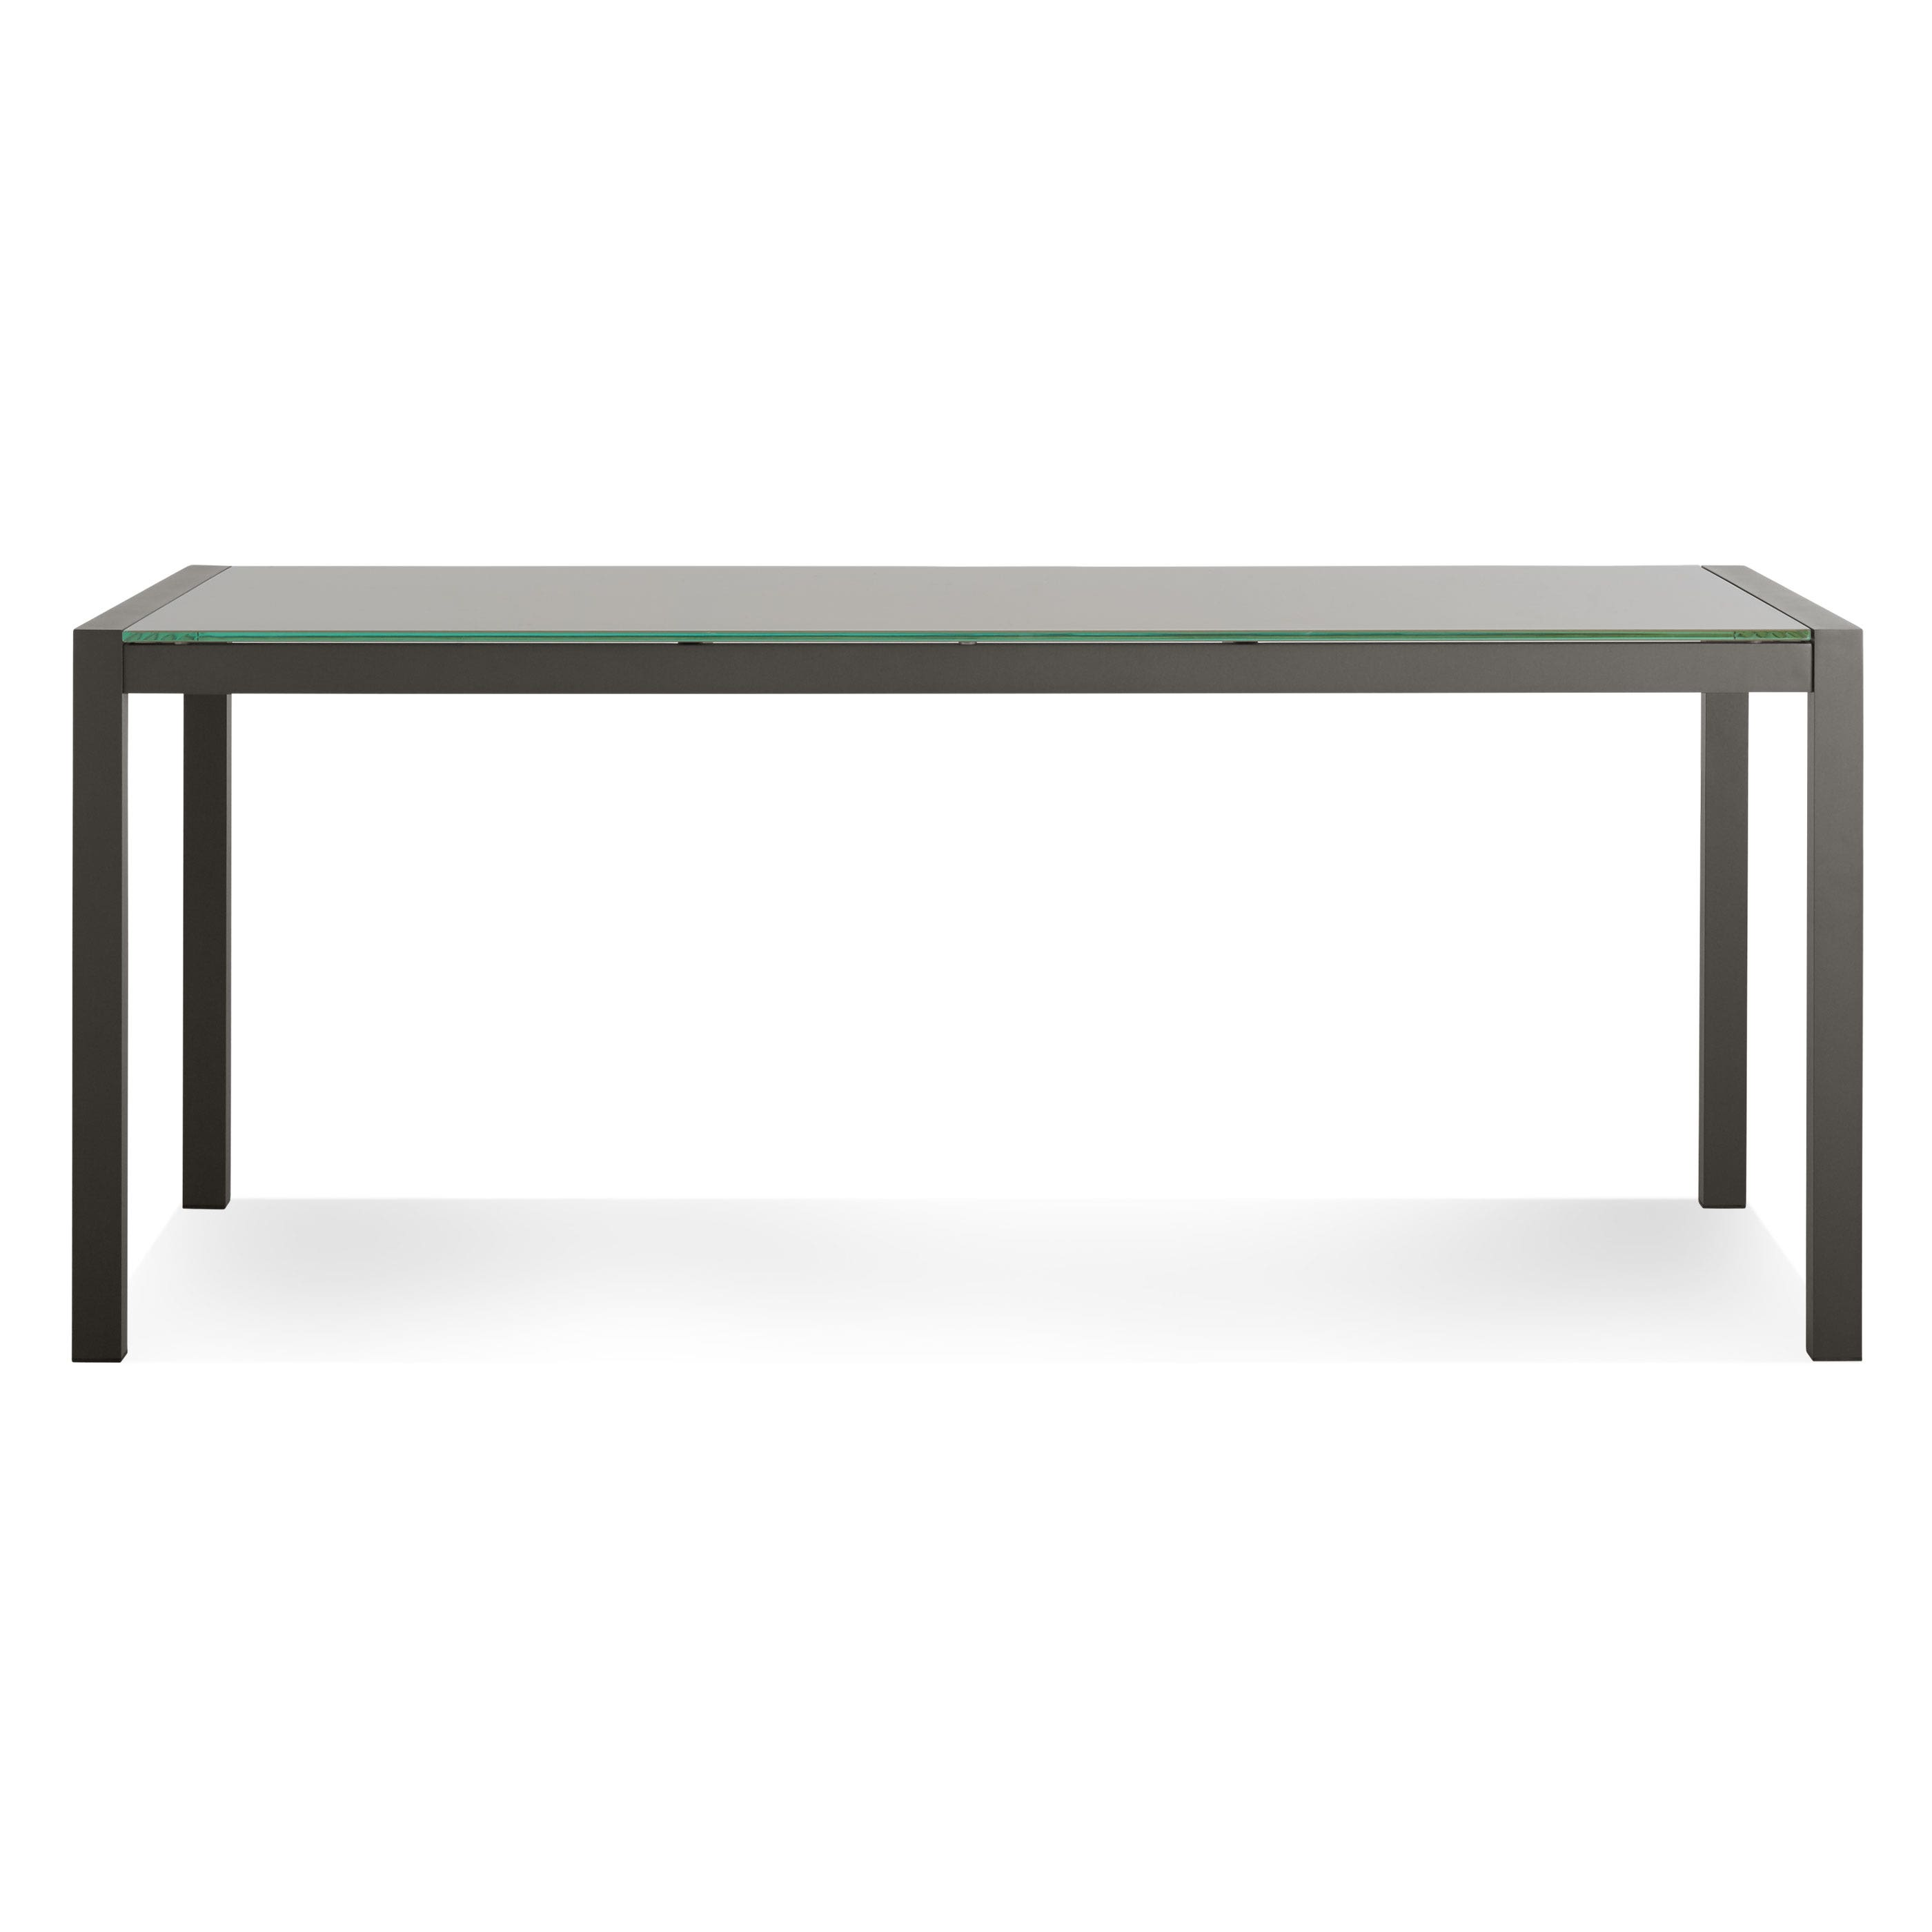 Skiff Outdoor Rectangular Dining Table